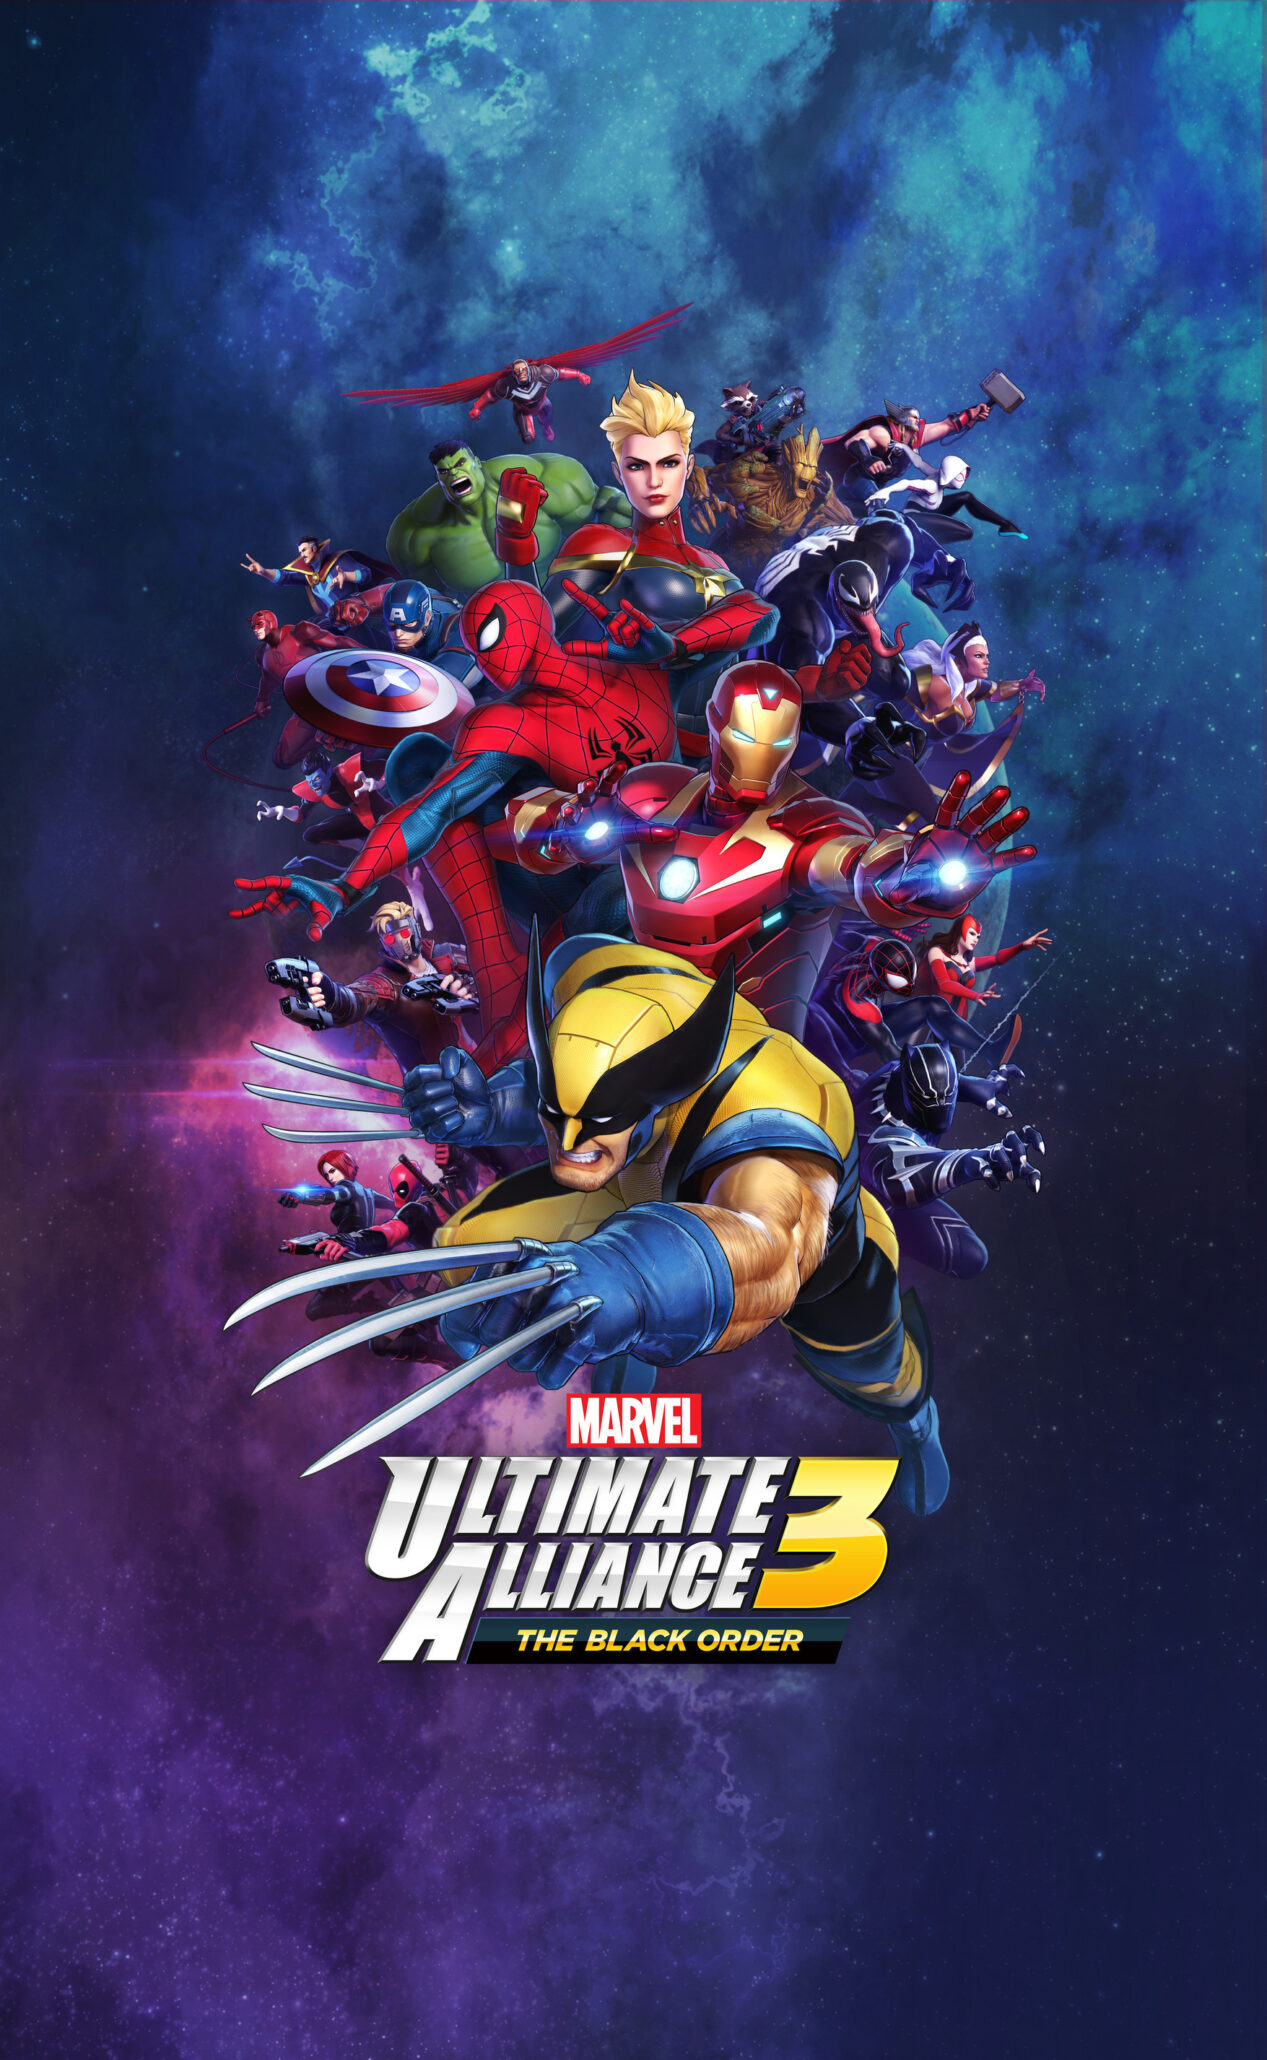 MARVEL ULTIMATE ALLIANCE 3: The Black Order Is Coming Out July 19th